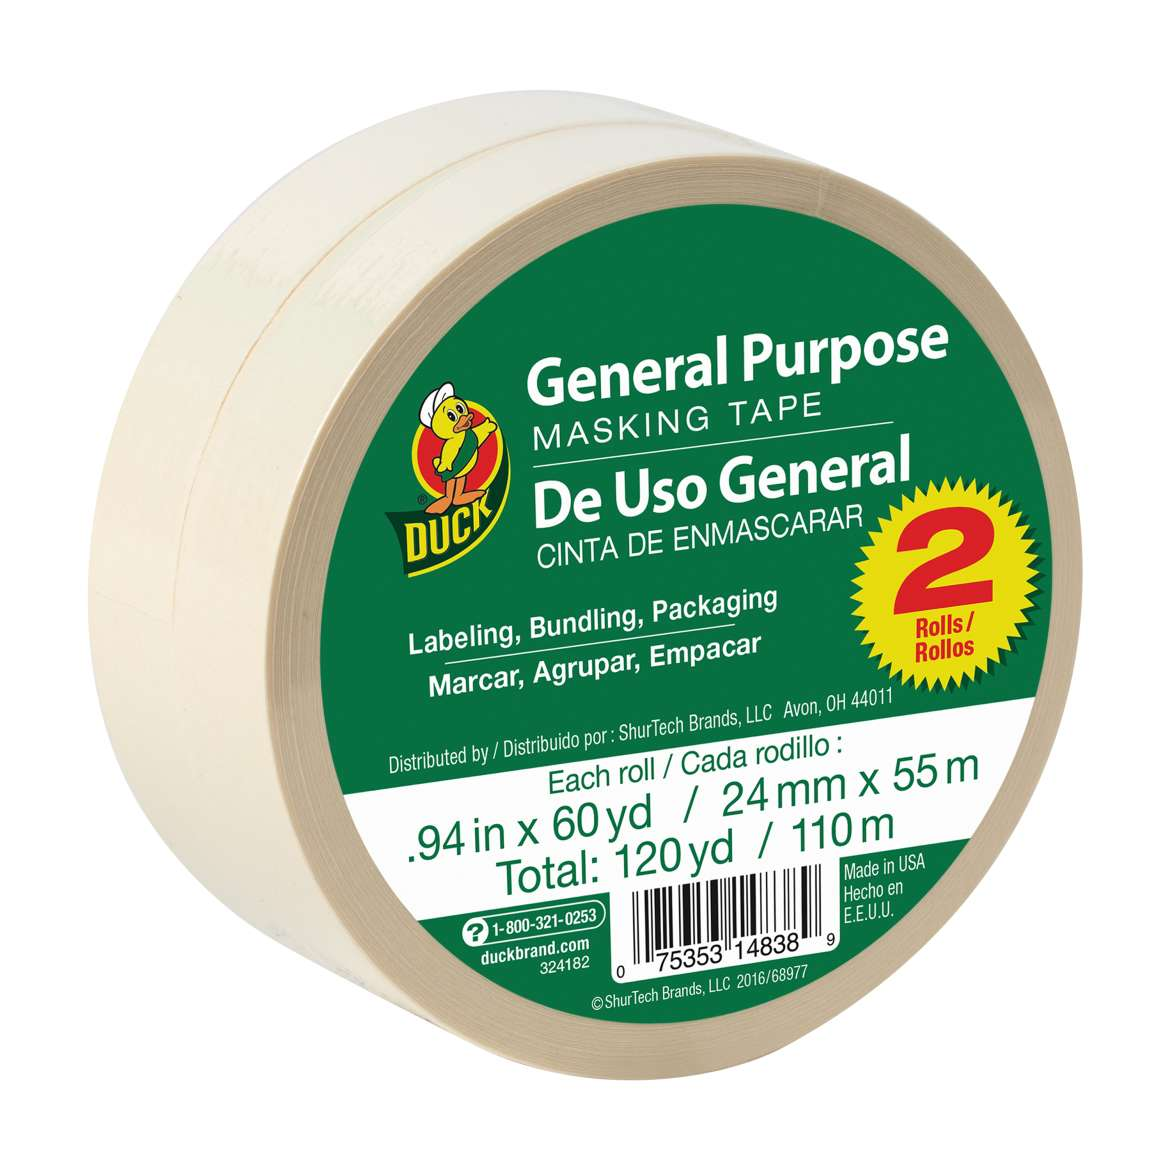 Duck® Brand General Purpose Masking Tape - Beige, 2 pk, .94 in. x 60 yd. Image